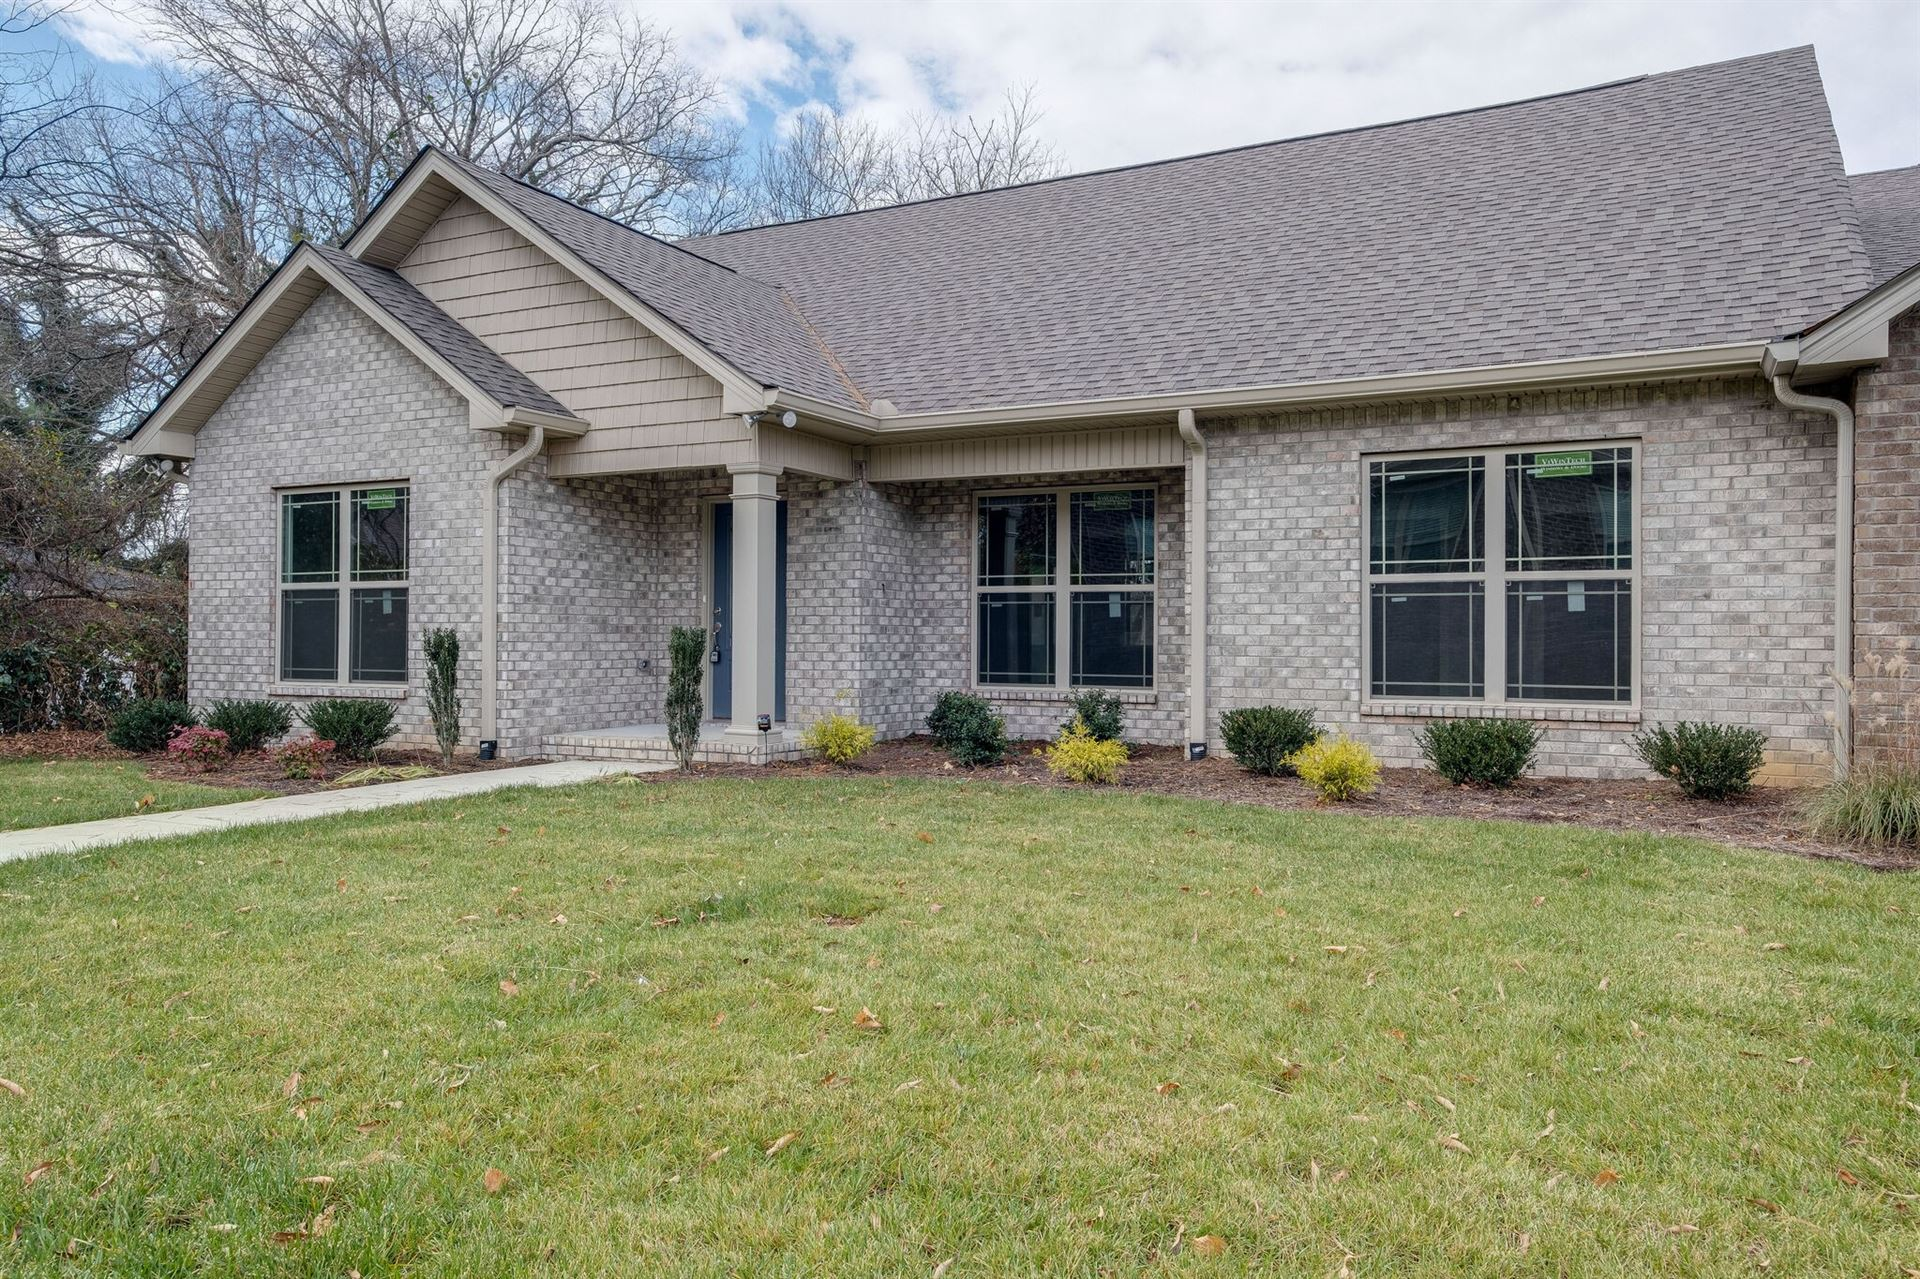 162 Odie Ray St #C, Gallatin, TN 37066 - MLS#: 2213168